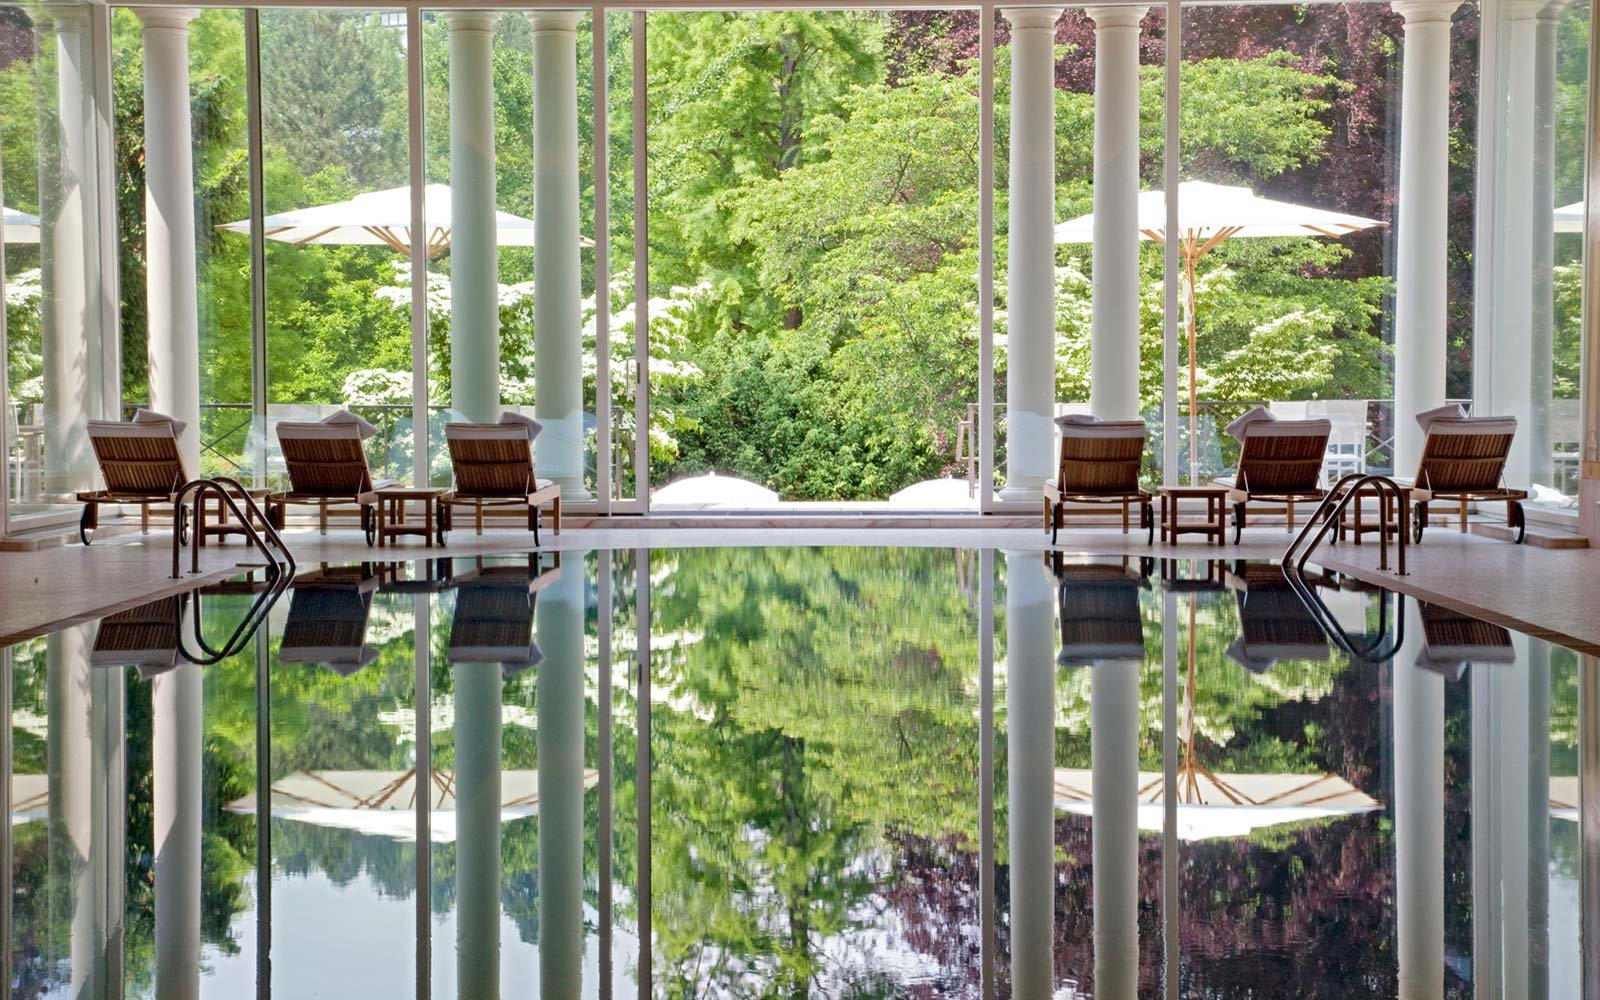 No. 11: Brenner's Park Hotel & Spa in Baden Baden, Germany